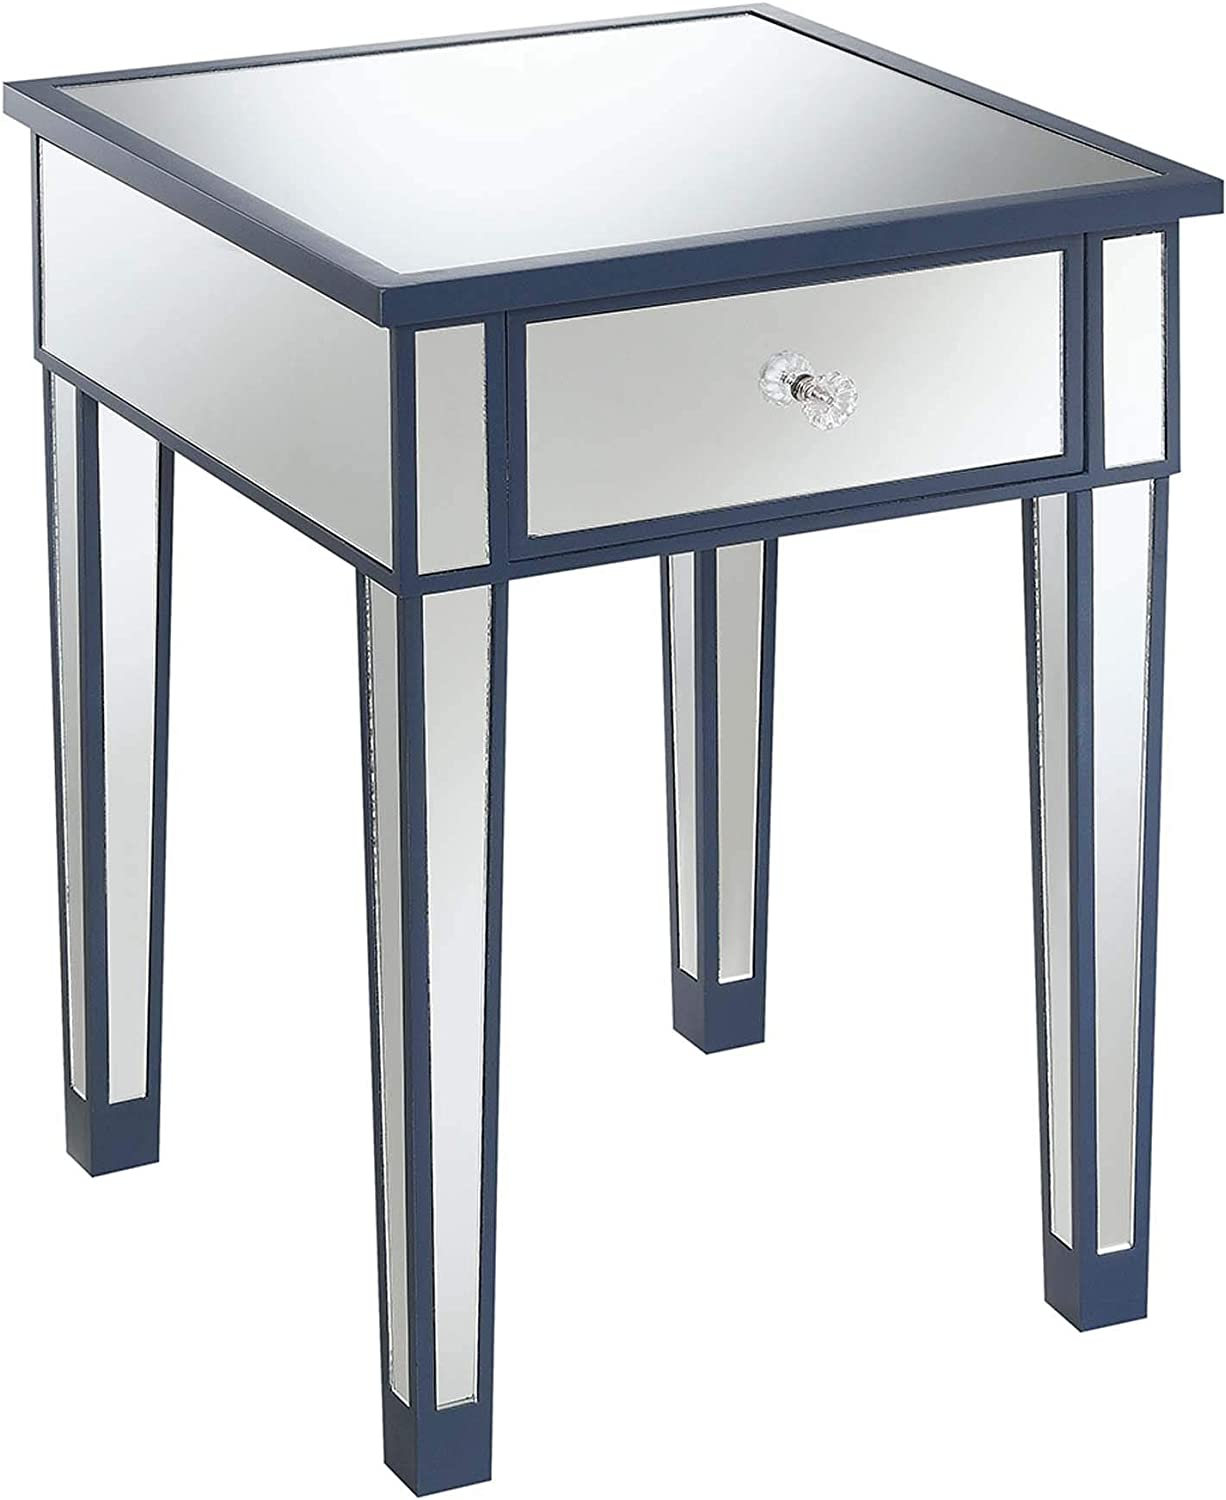 Convenience Concepts Gold Coast Mirrored End Table with Drawer, Cobalt Blue / Mirror